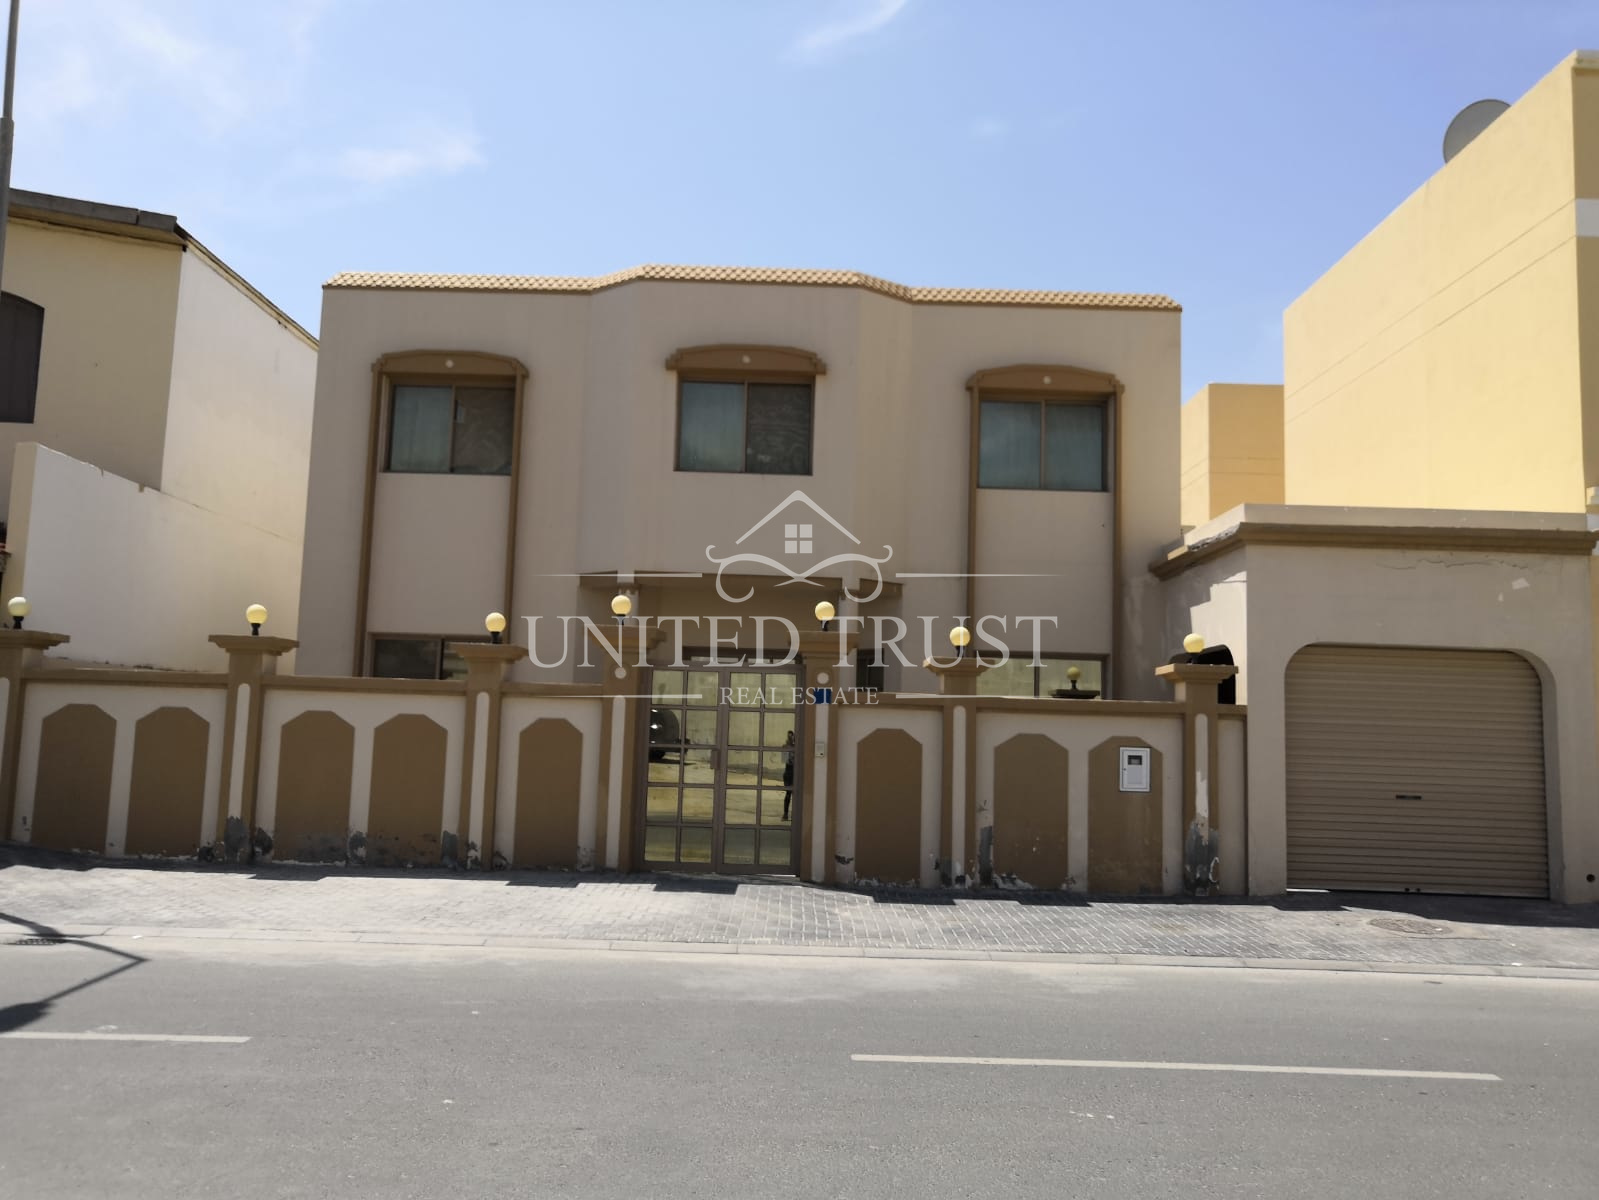 For sale  villa in galali Ref: QAL-AB-003